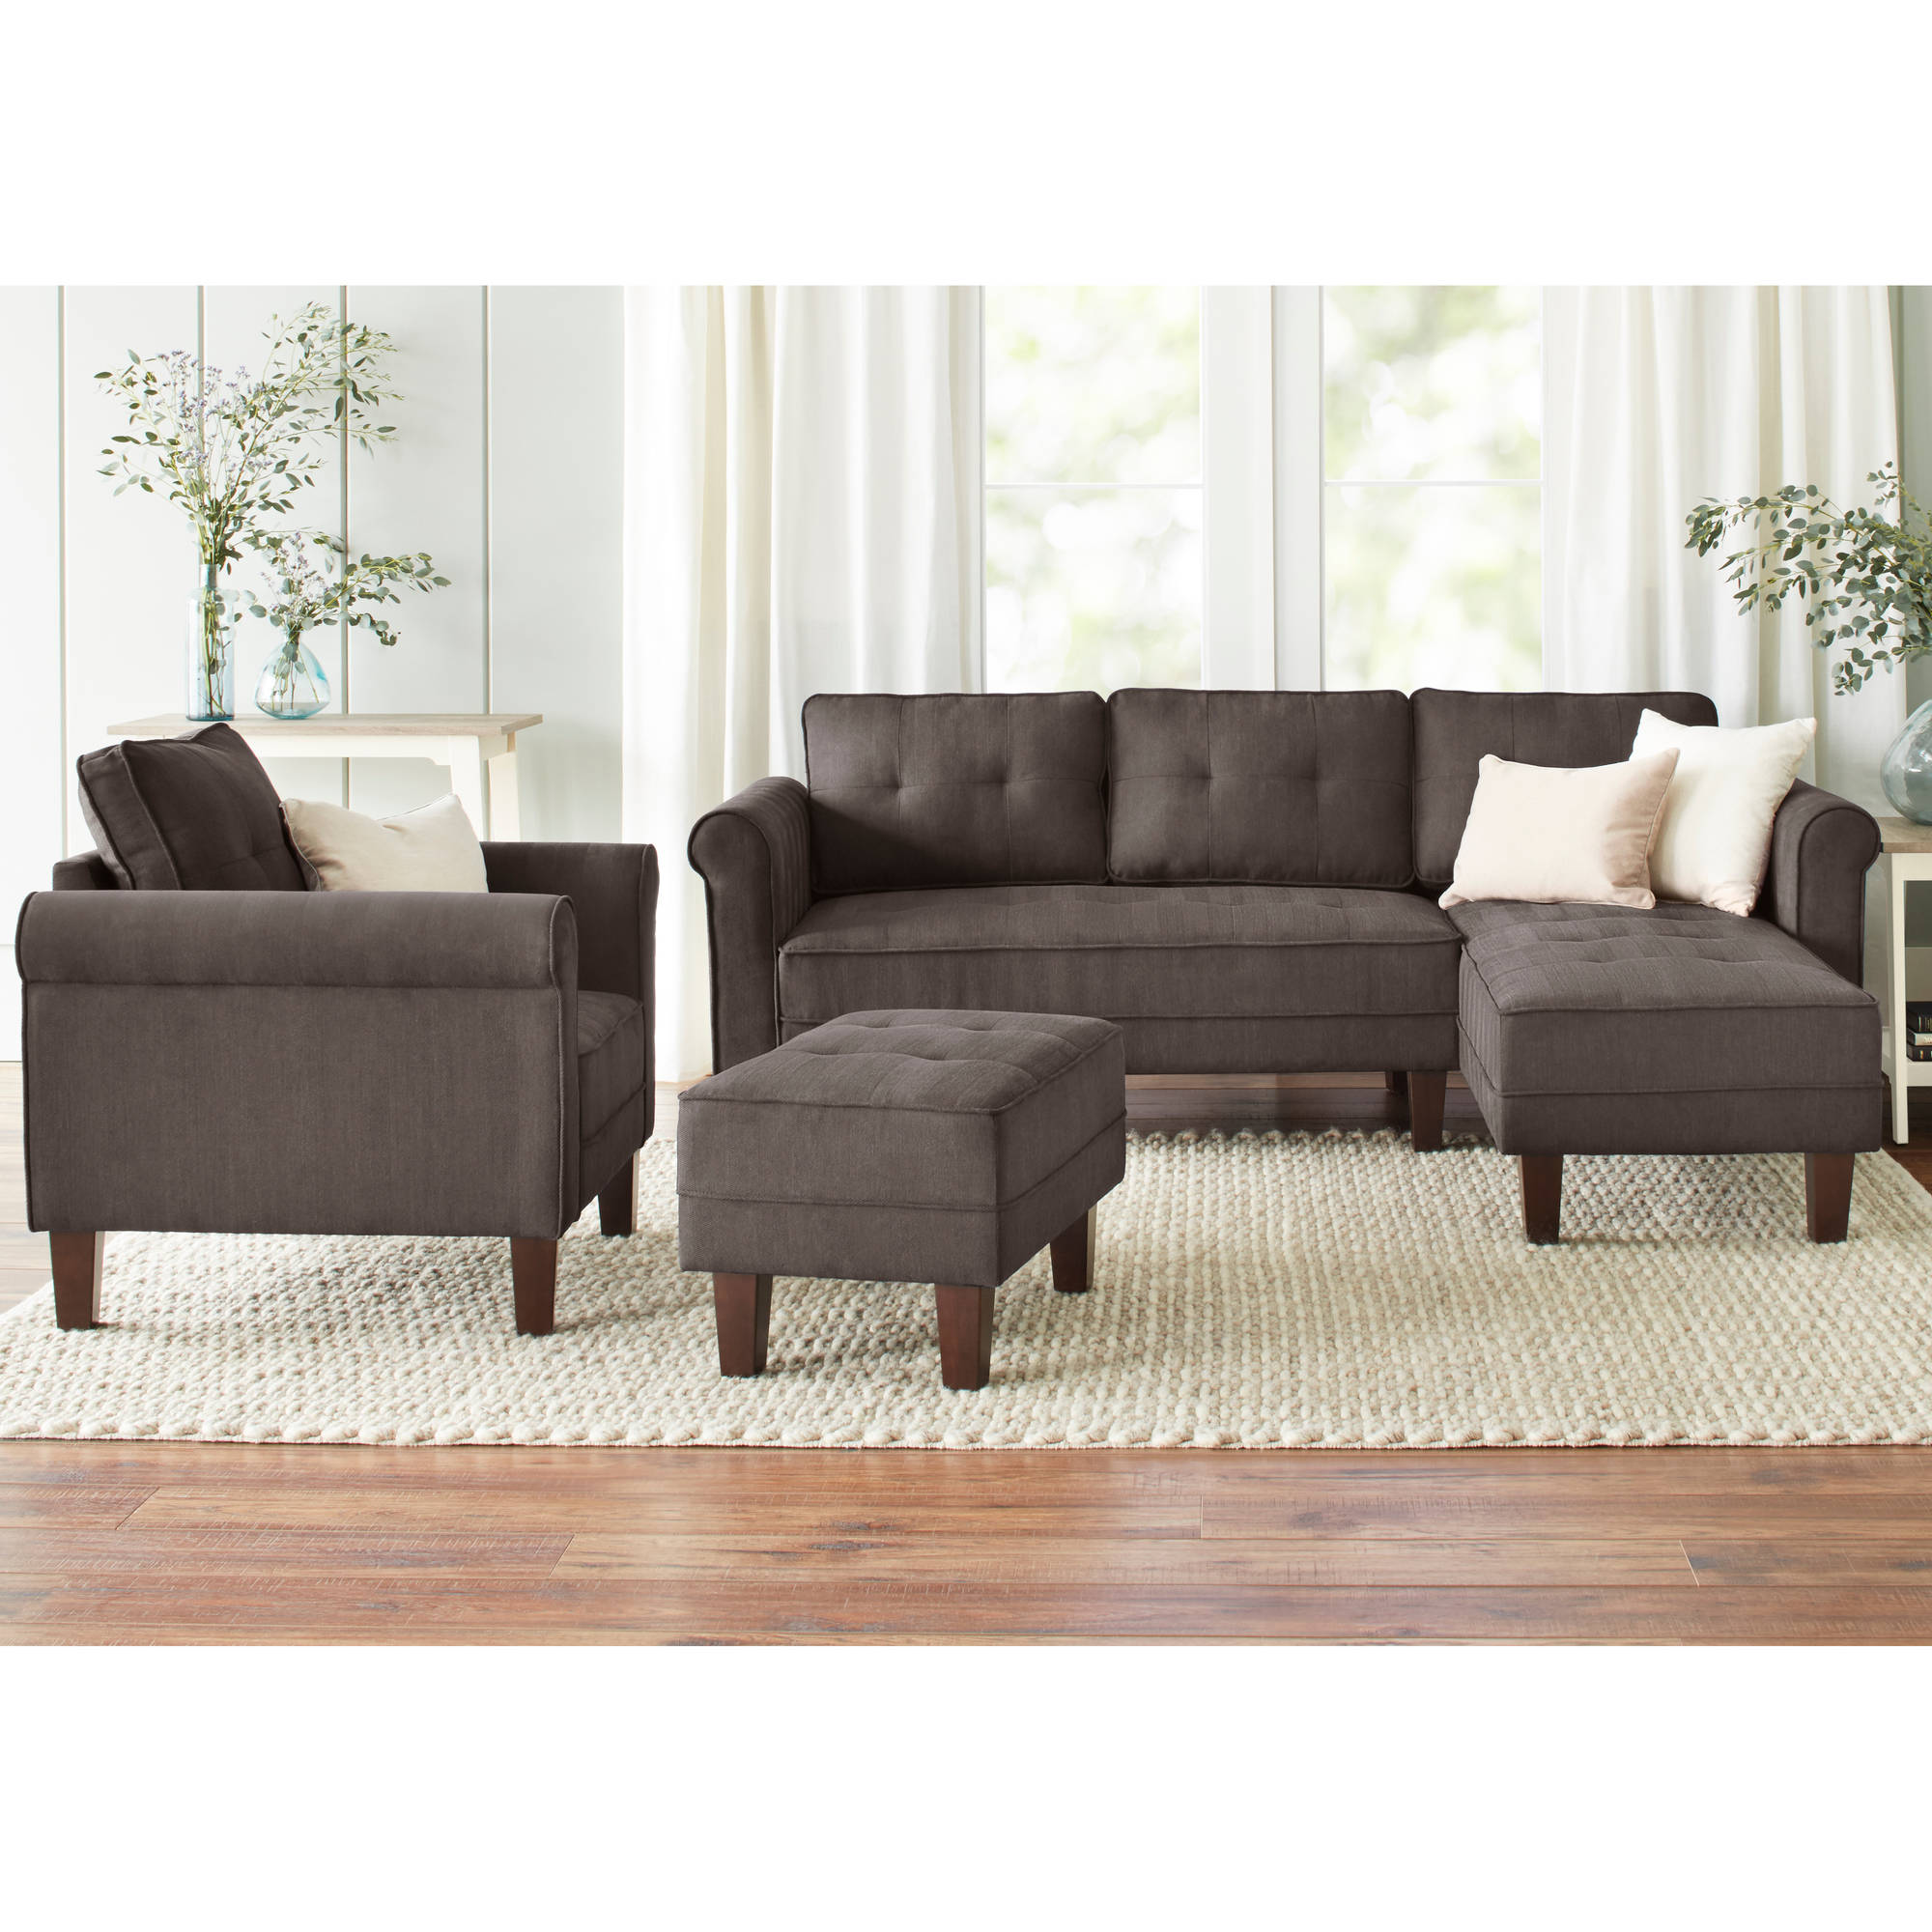 Protected teens banging on the sofa